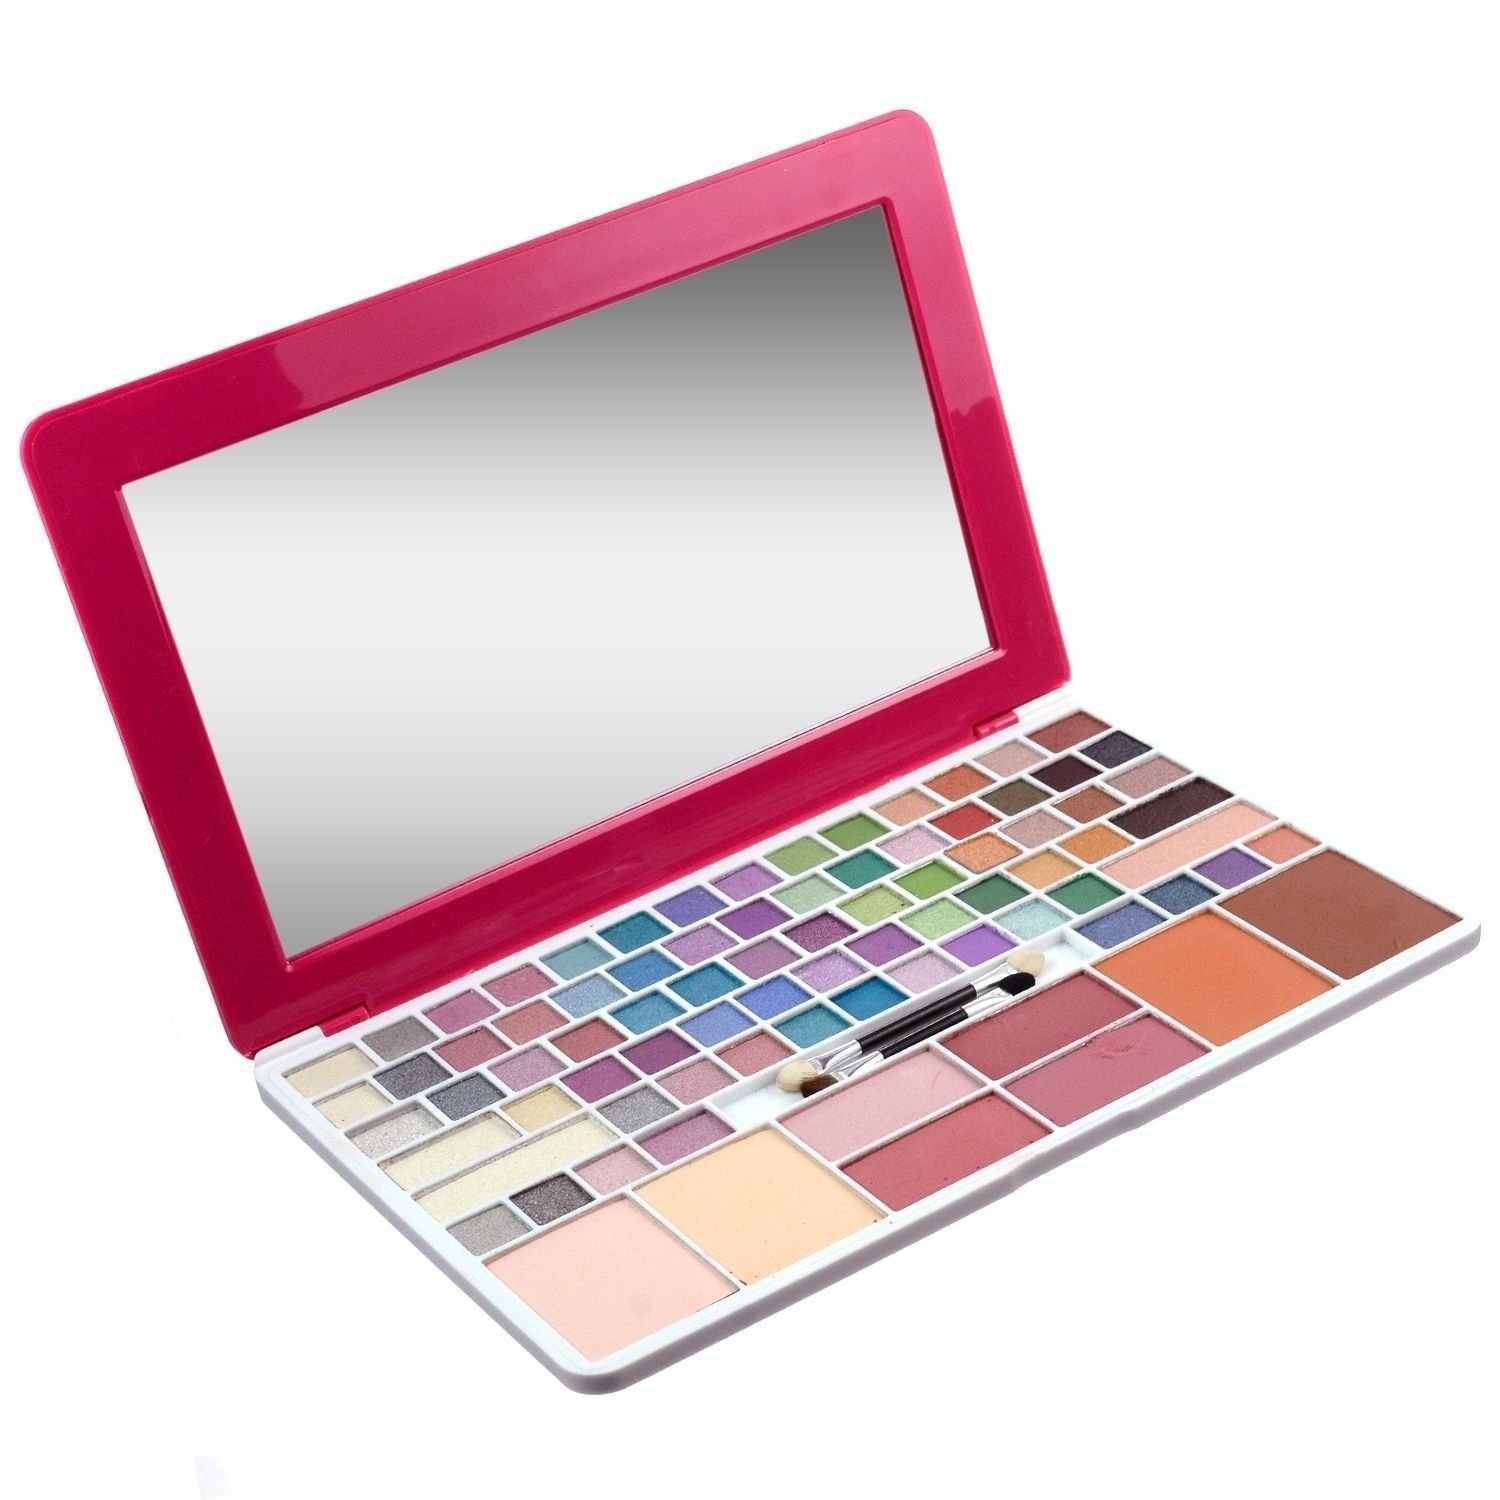 10 Fashionable Gift Ideas For A 15 Year Old Girl top gifts for 15 year old girls 15 years and makeup 1 2021